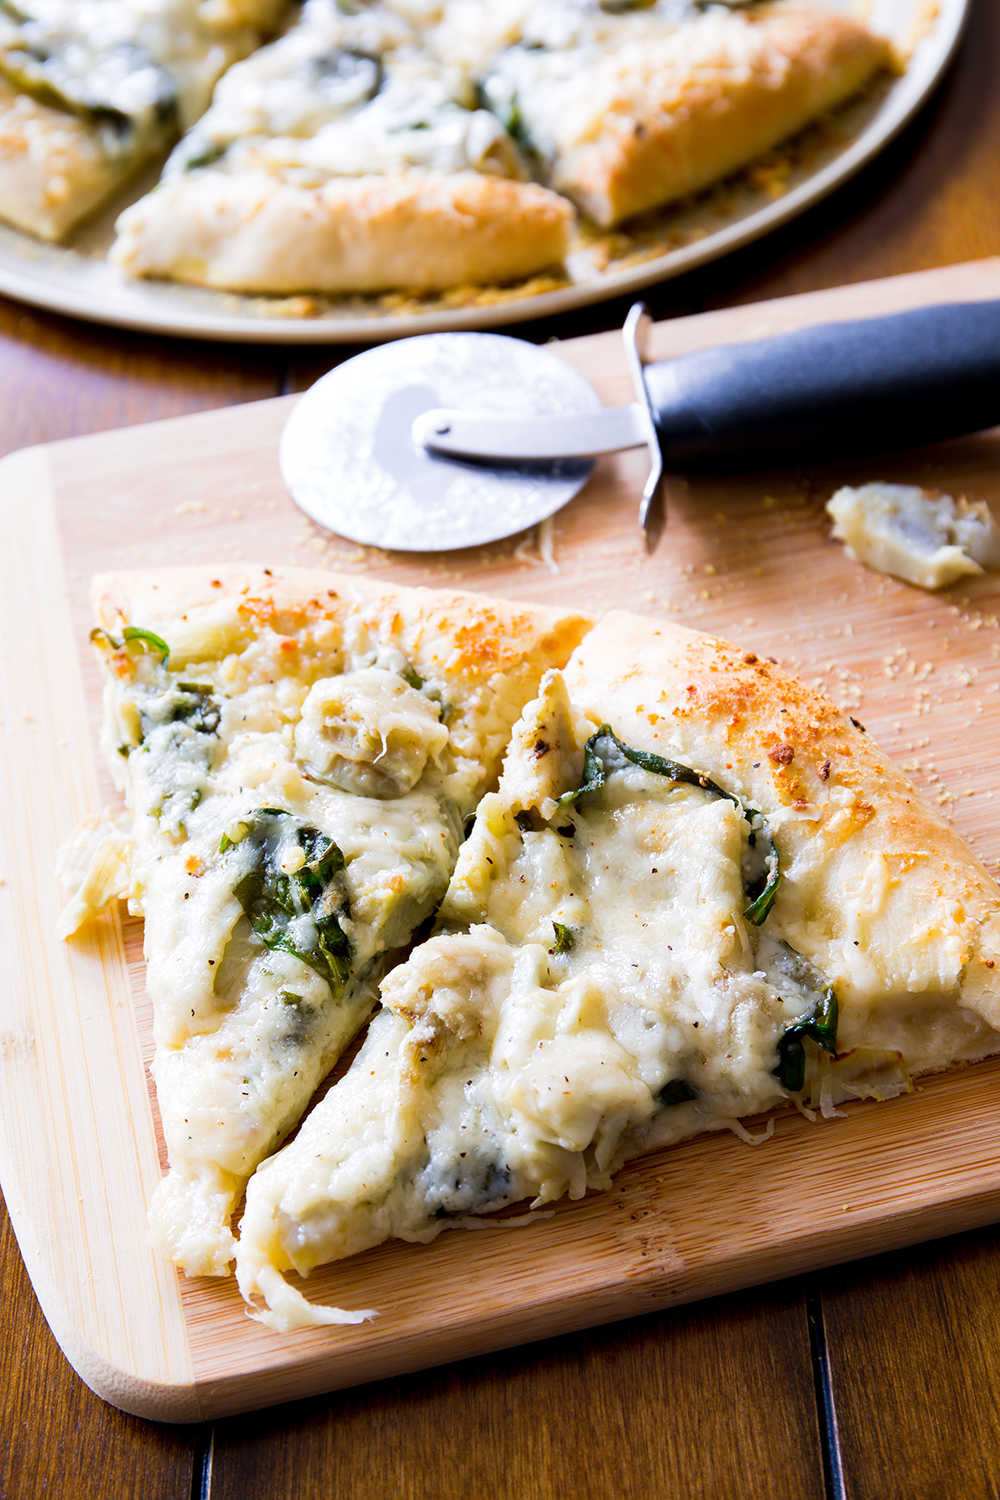 Spinach Artichoke White Cheese Pizza